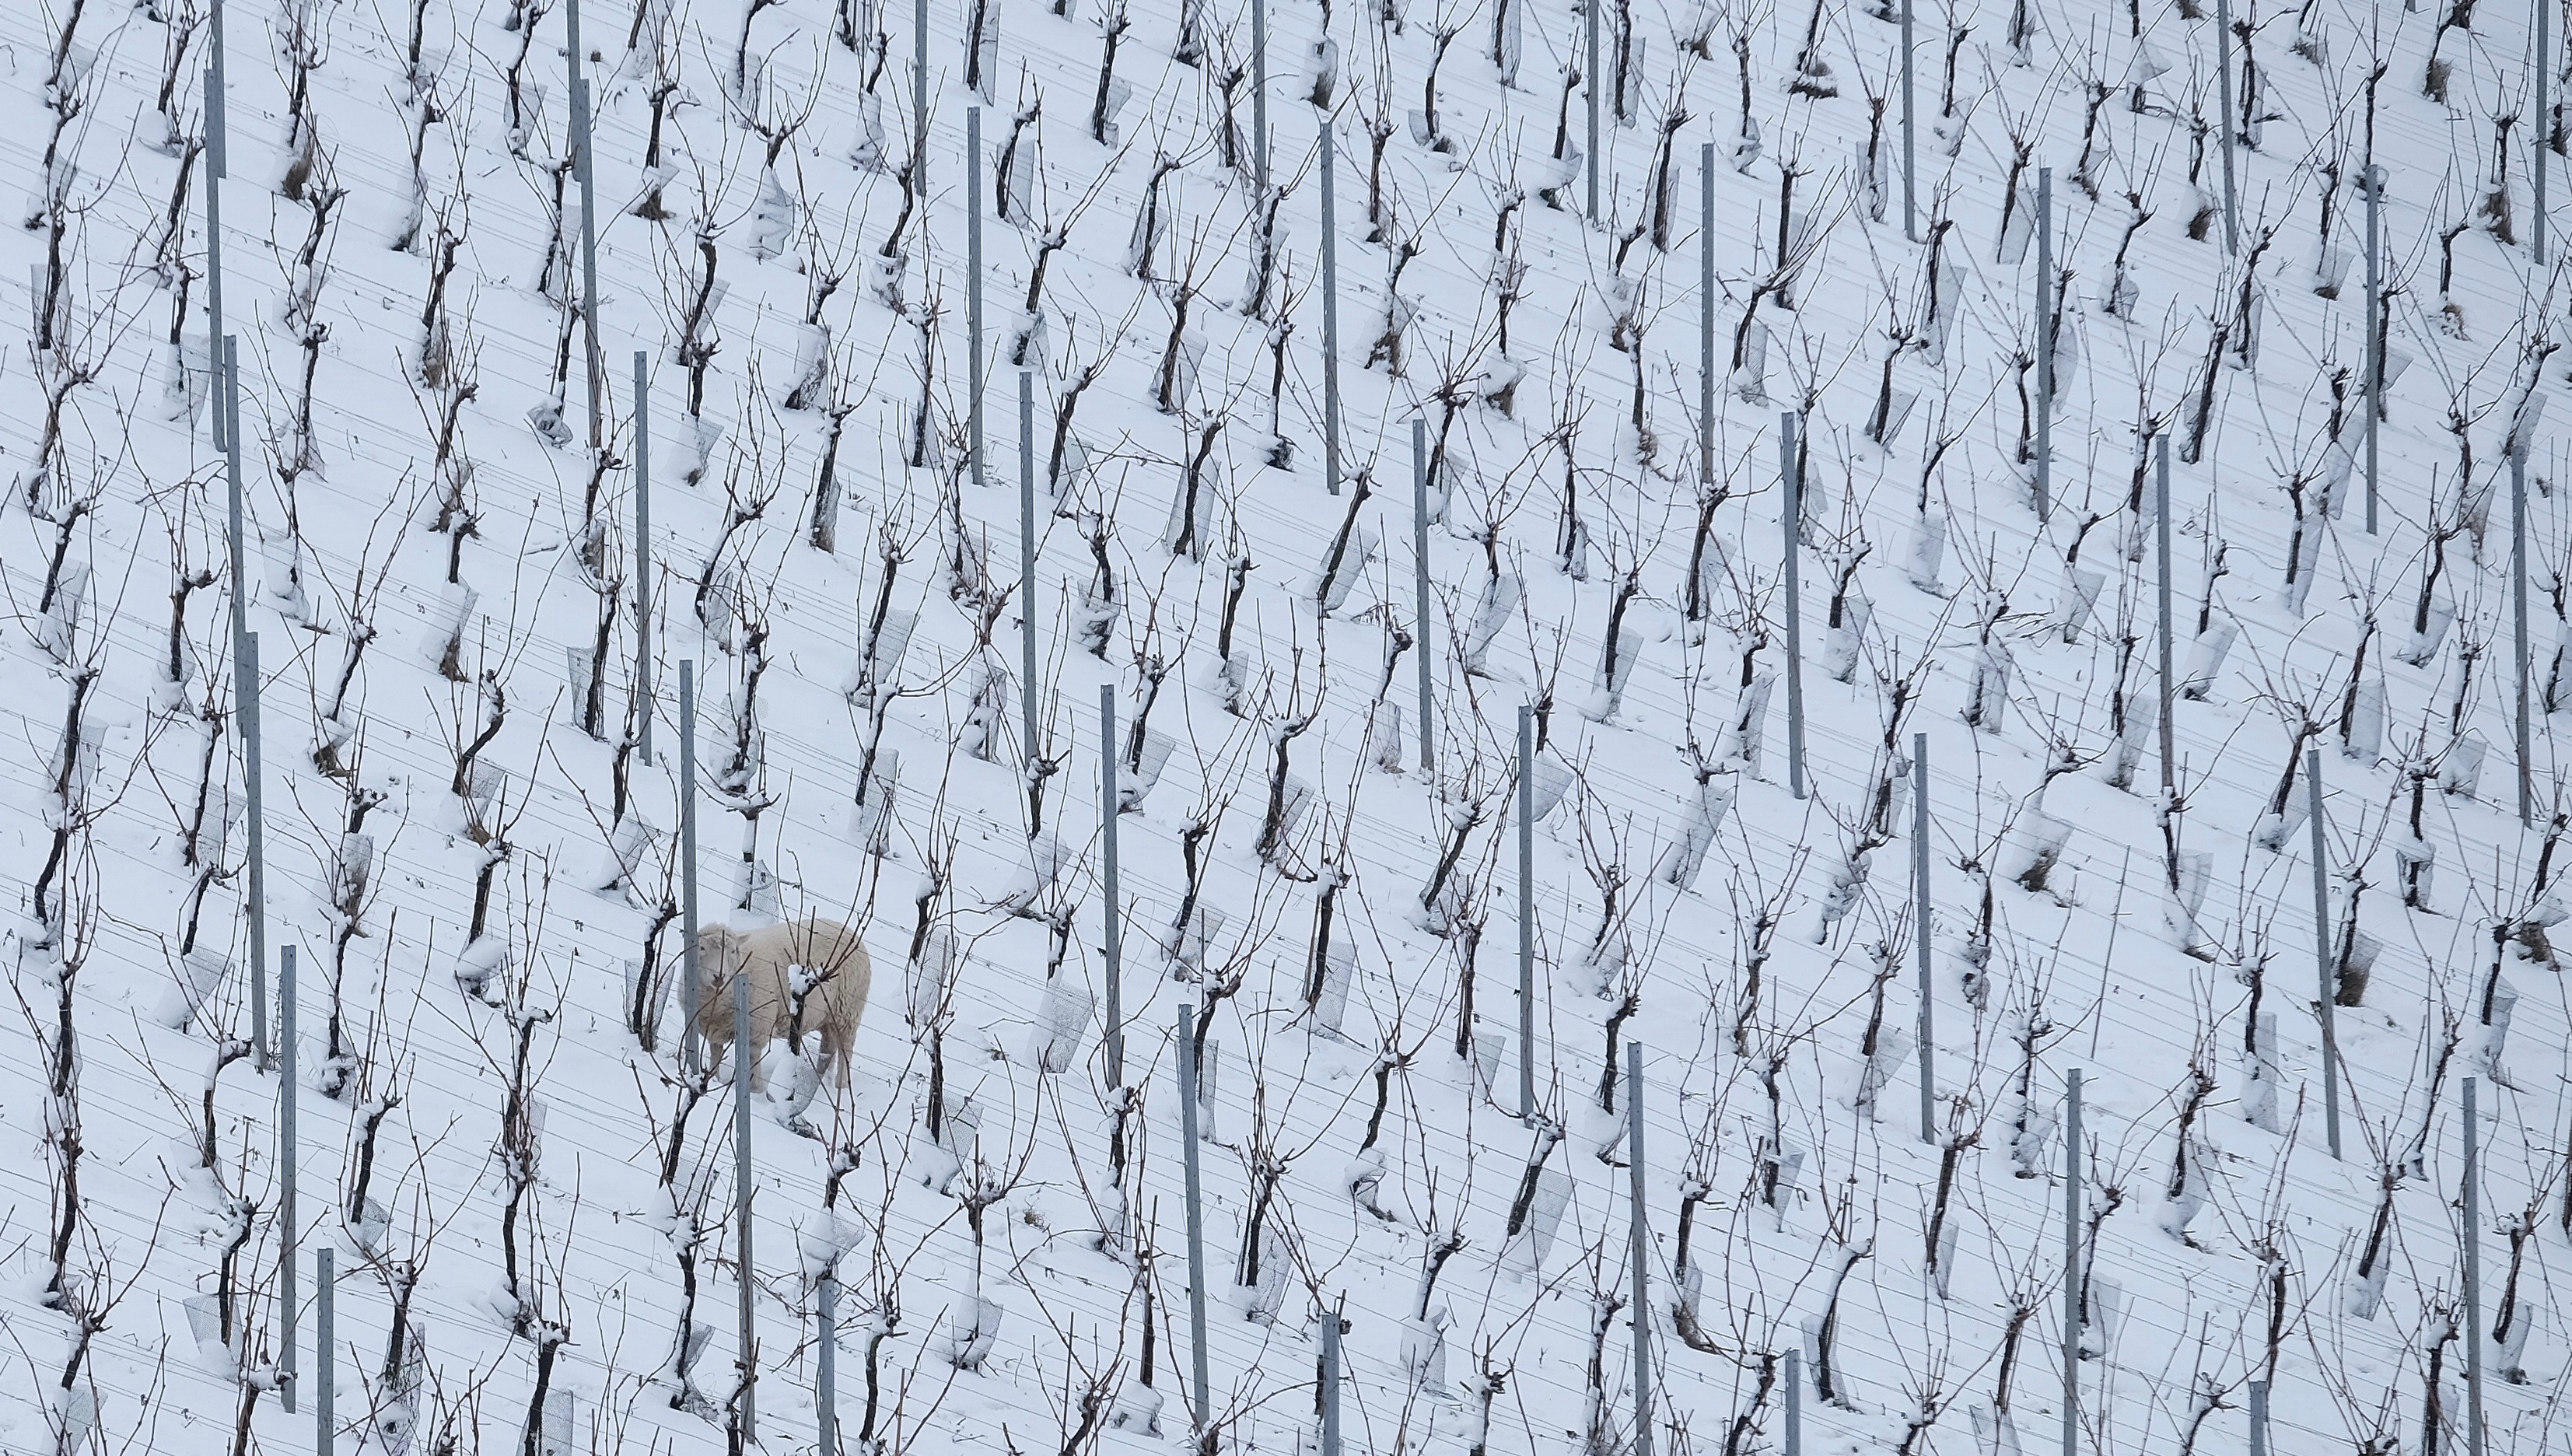 Sheep in the vines ...